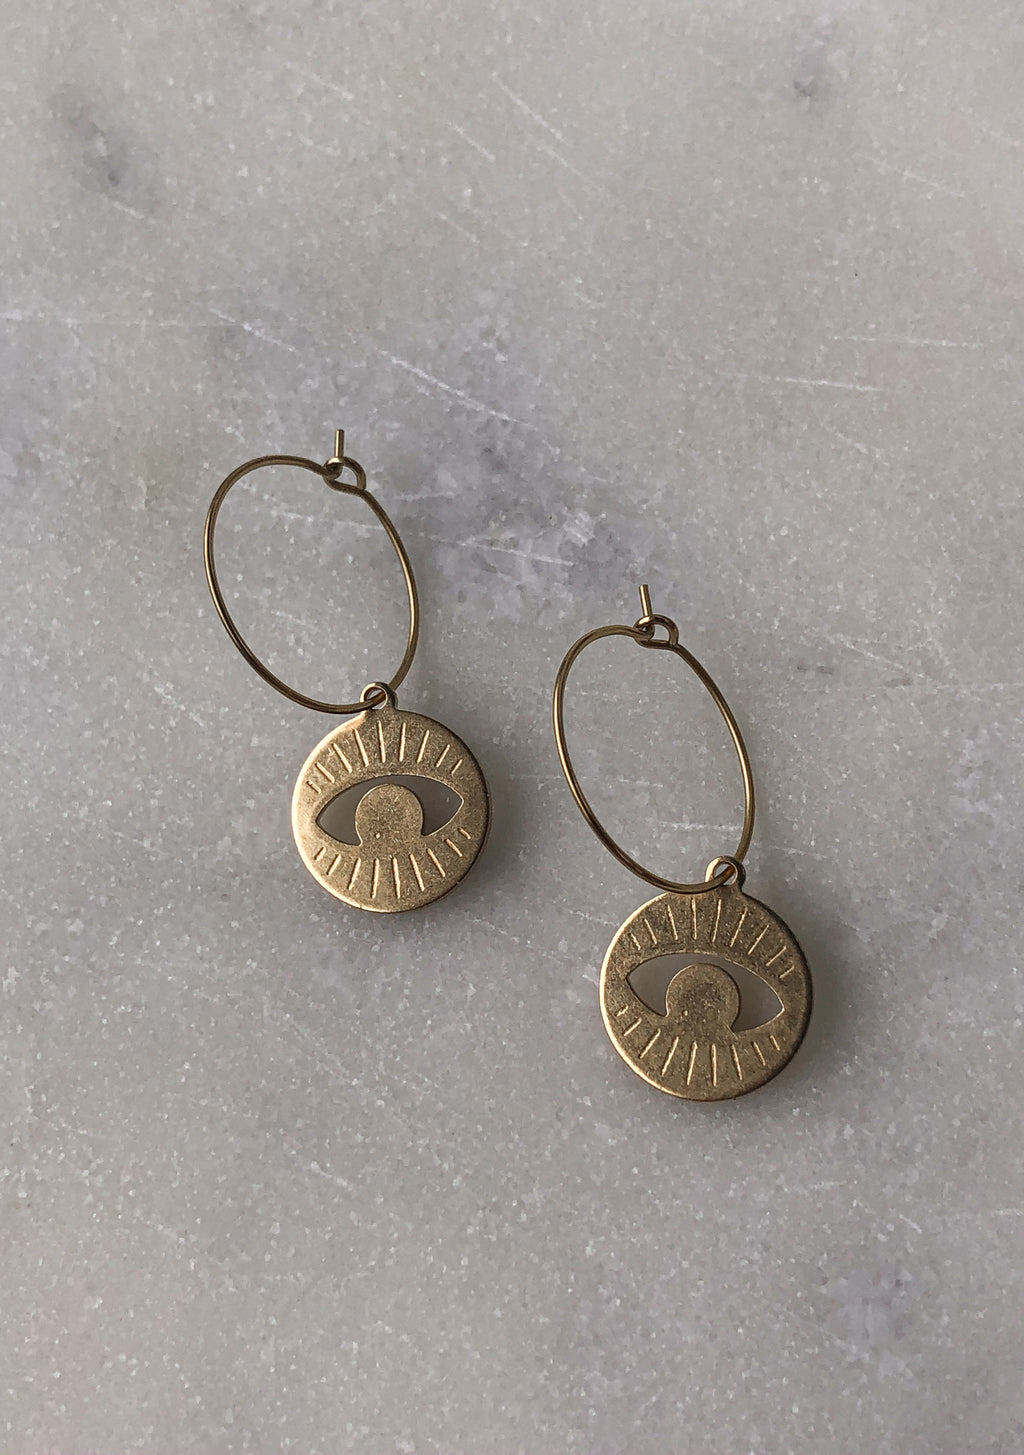 Minimalistic Ocular Mini Hoops - Indiecords.co - Clay Polymer Earrings